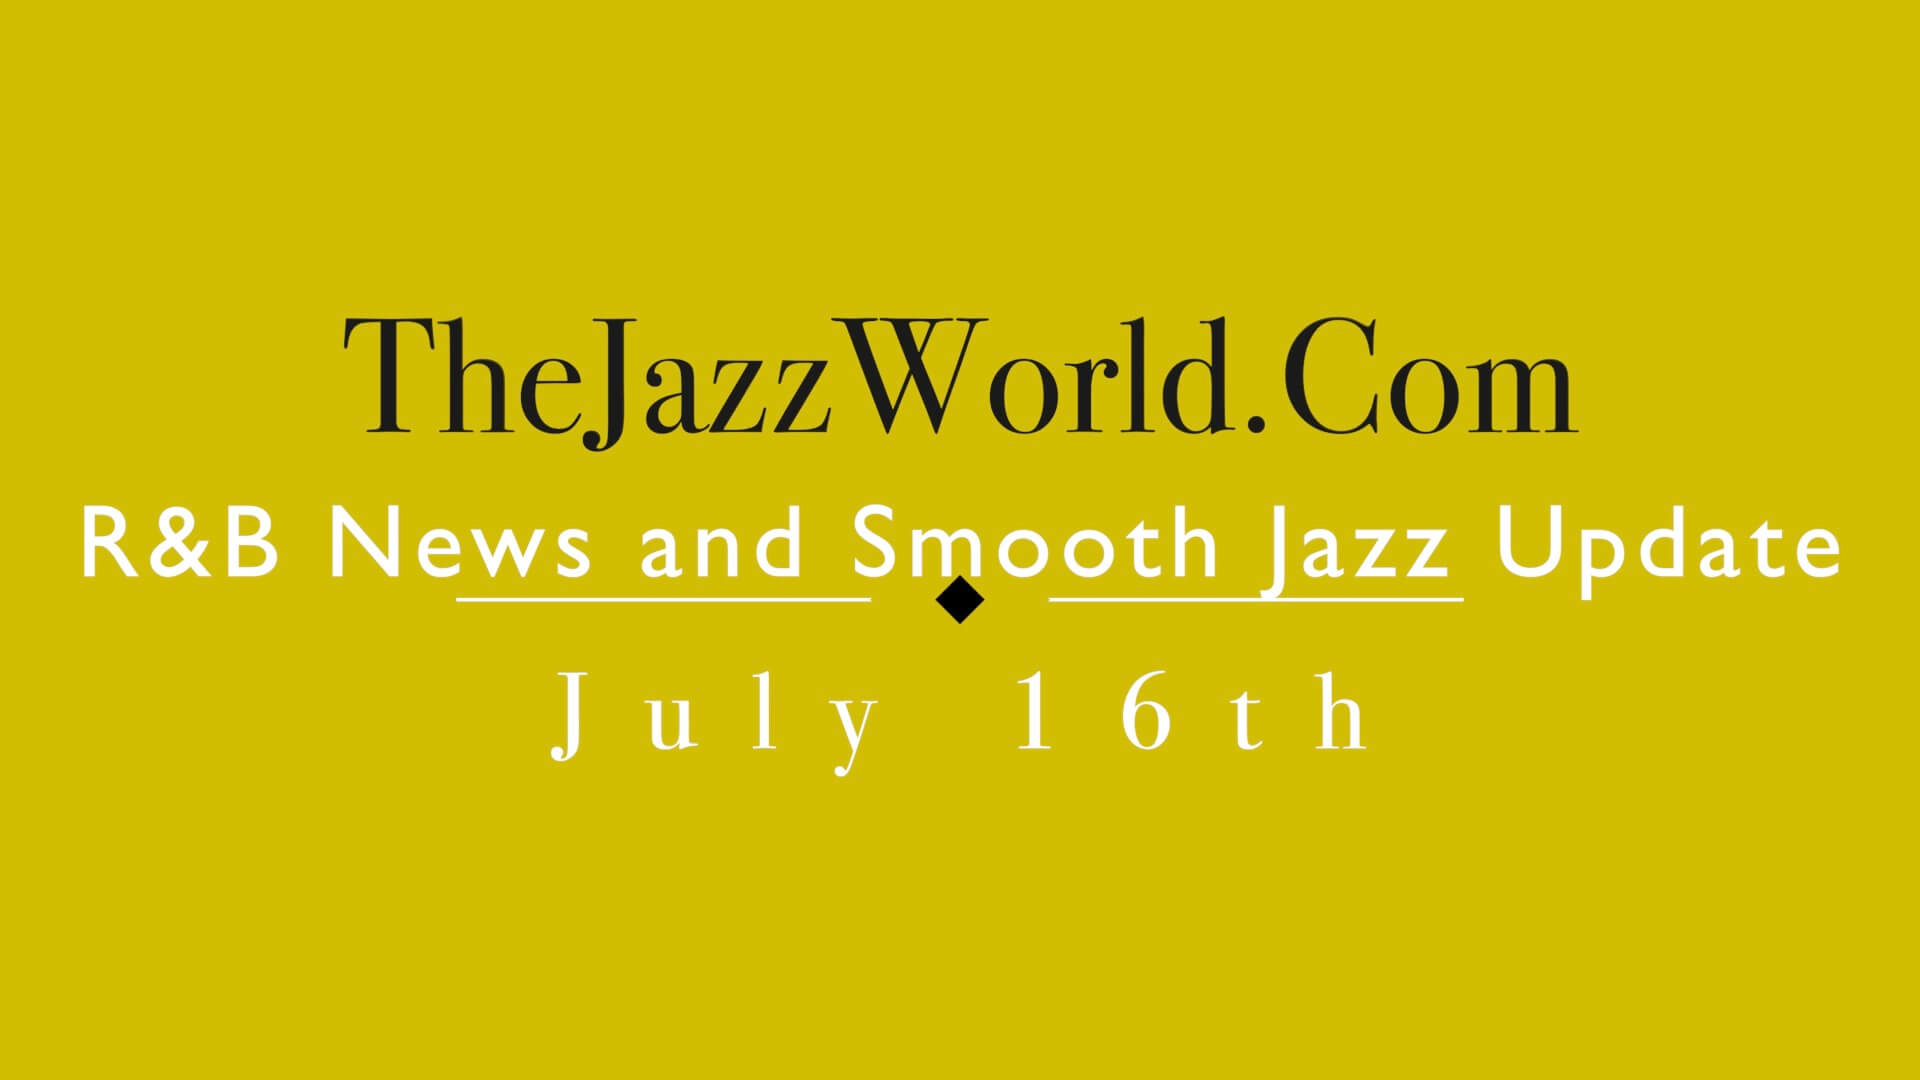 The Jazz World Show 7:16